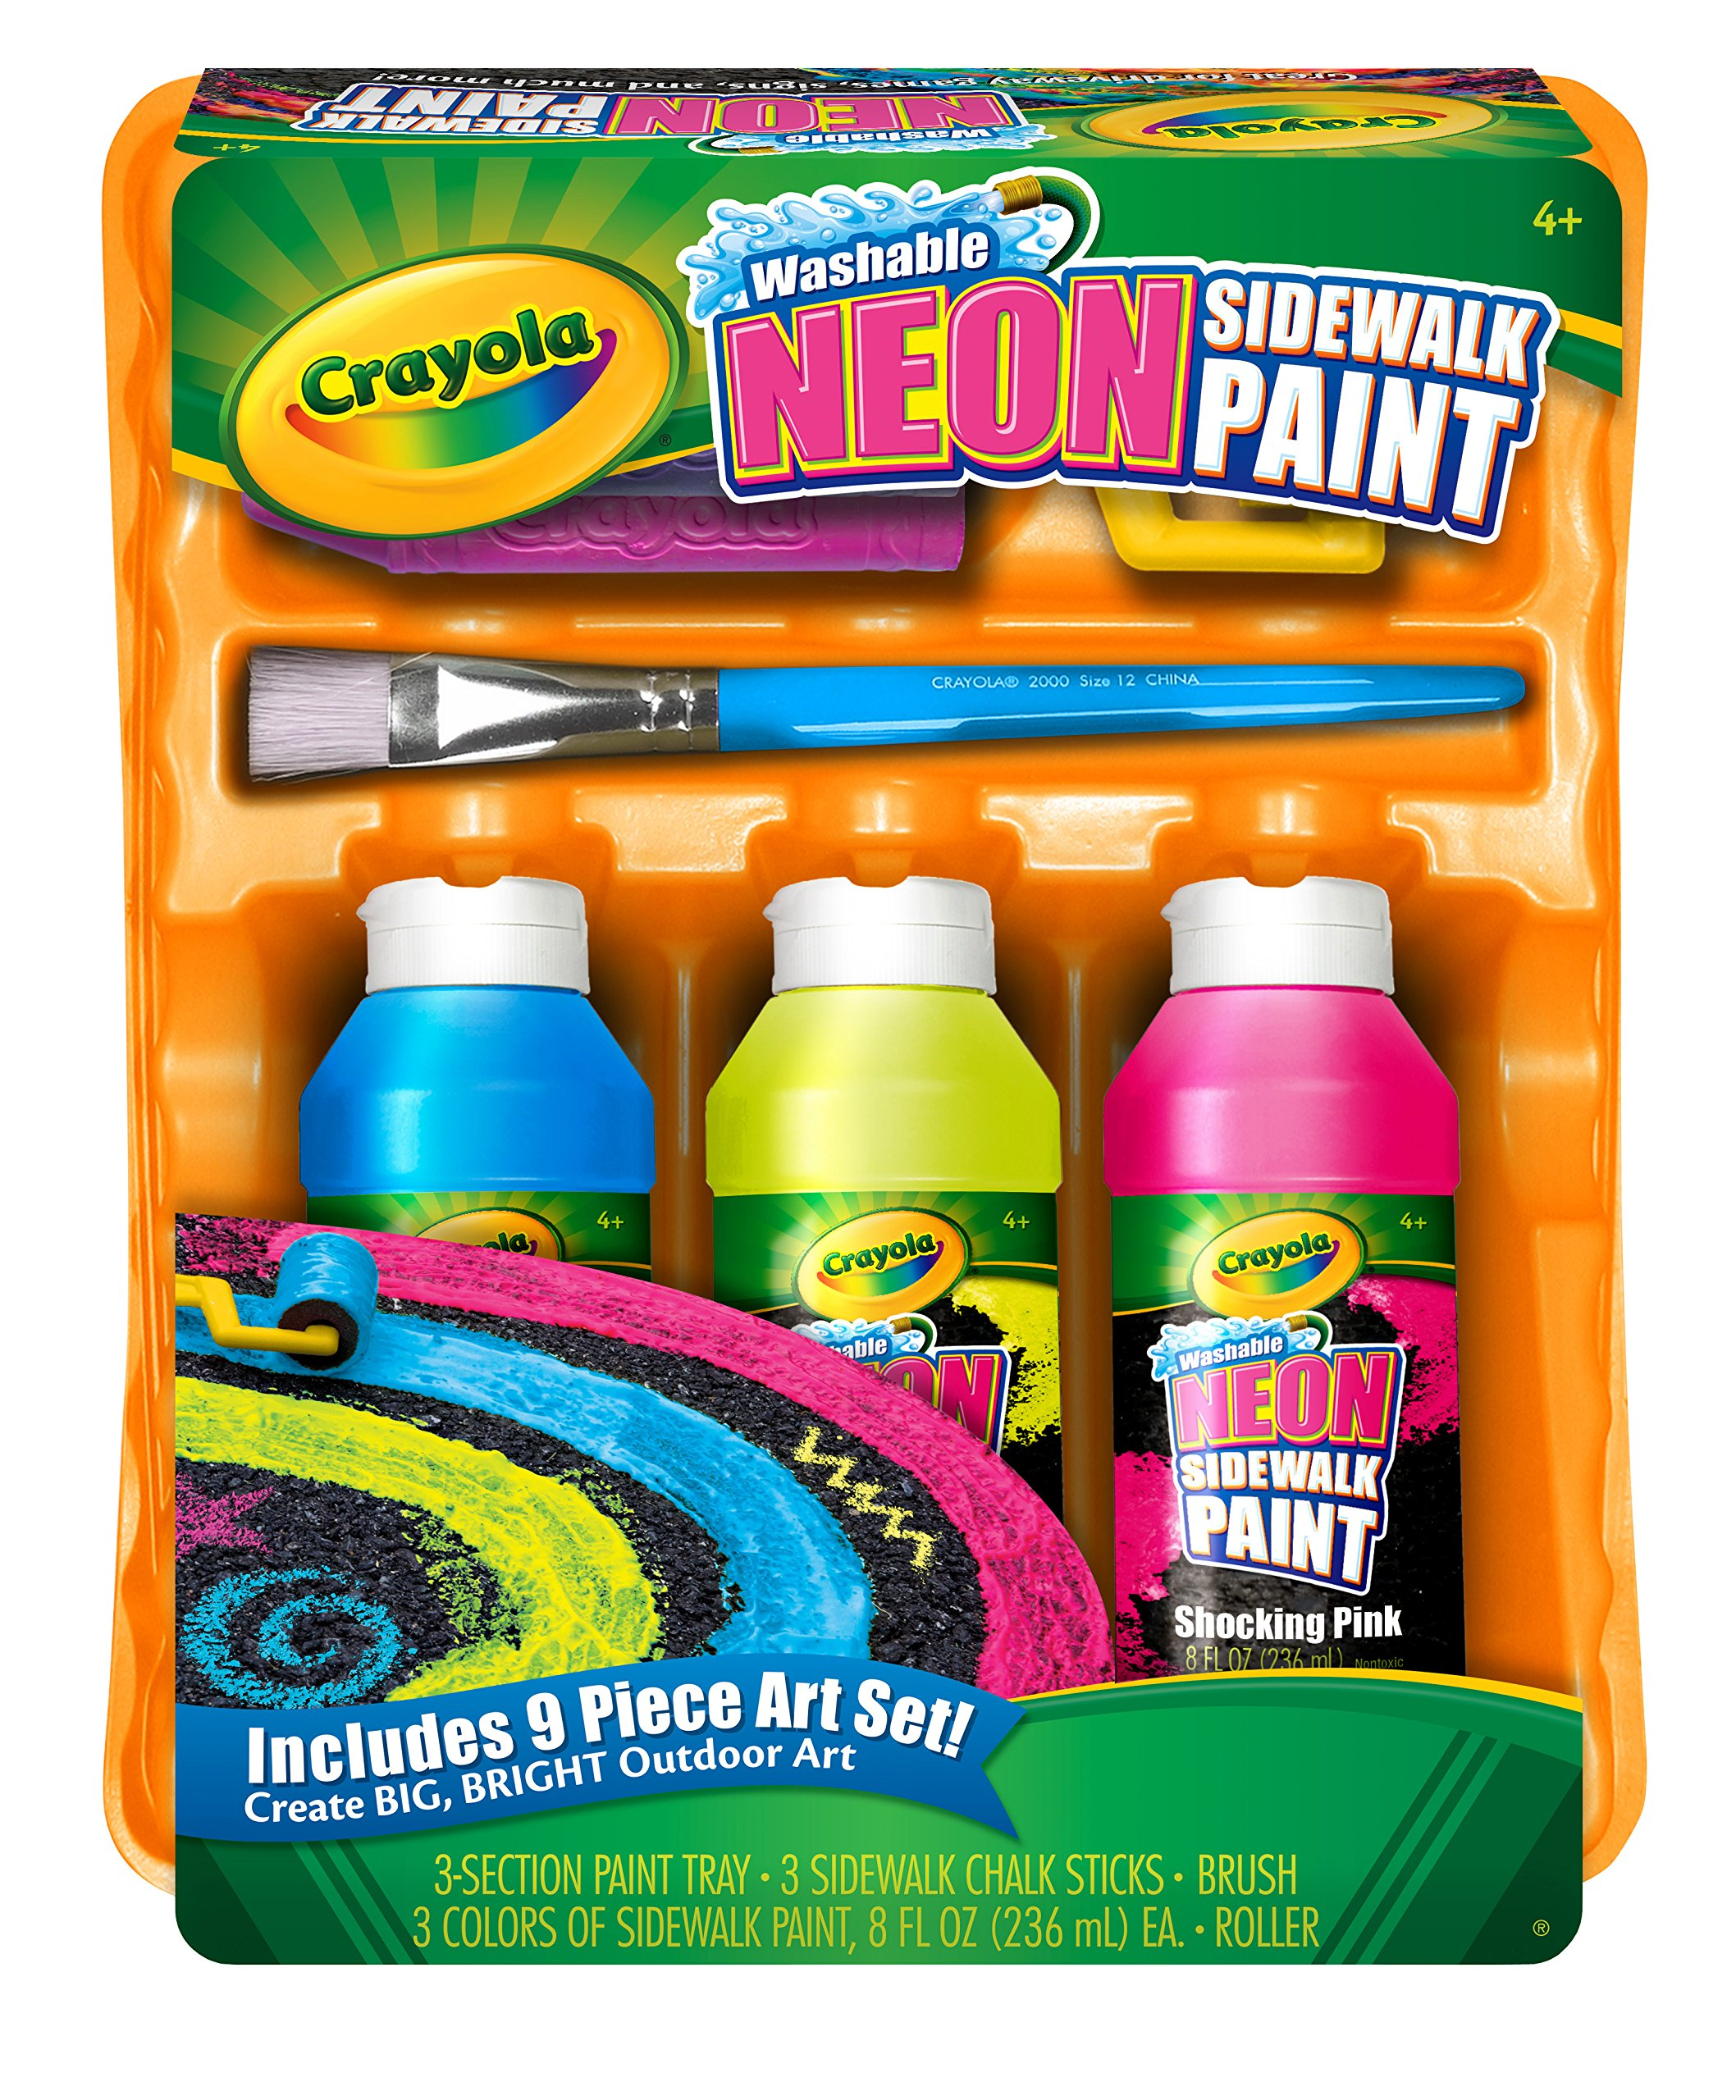 Crayola; Washable Neon Sidewalk Paint; Outdoor Art Tools; 3 Neon Paint Colors, Paint Brush, Roller and 3 Sidewalk Chalk Sticks by Crayola